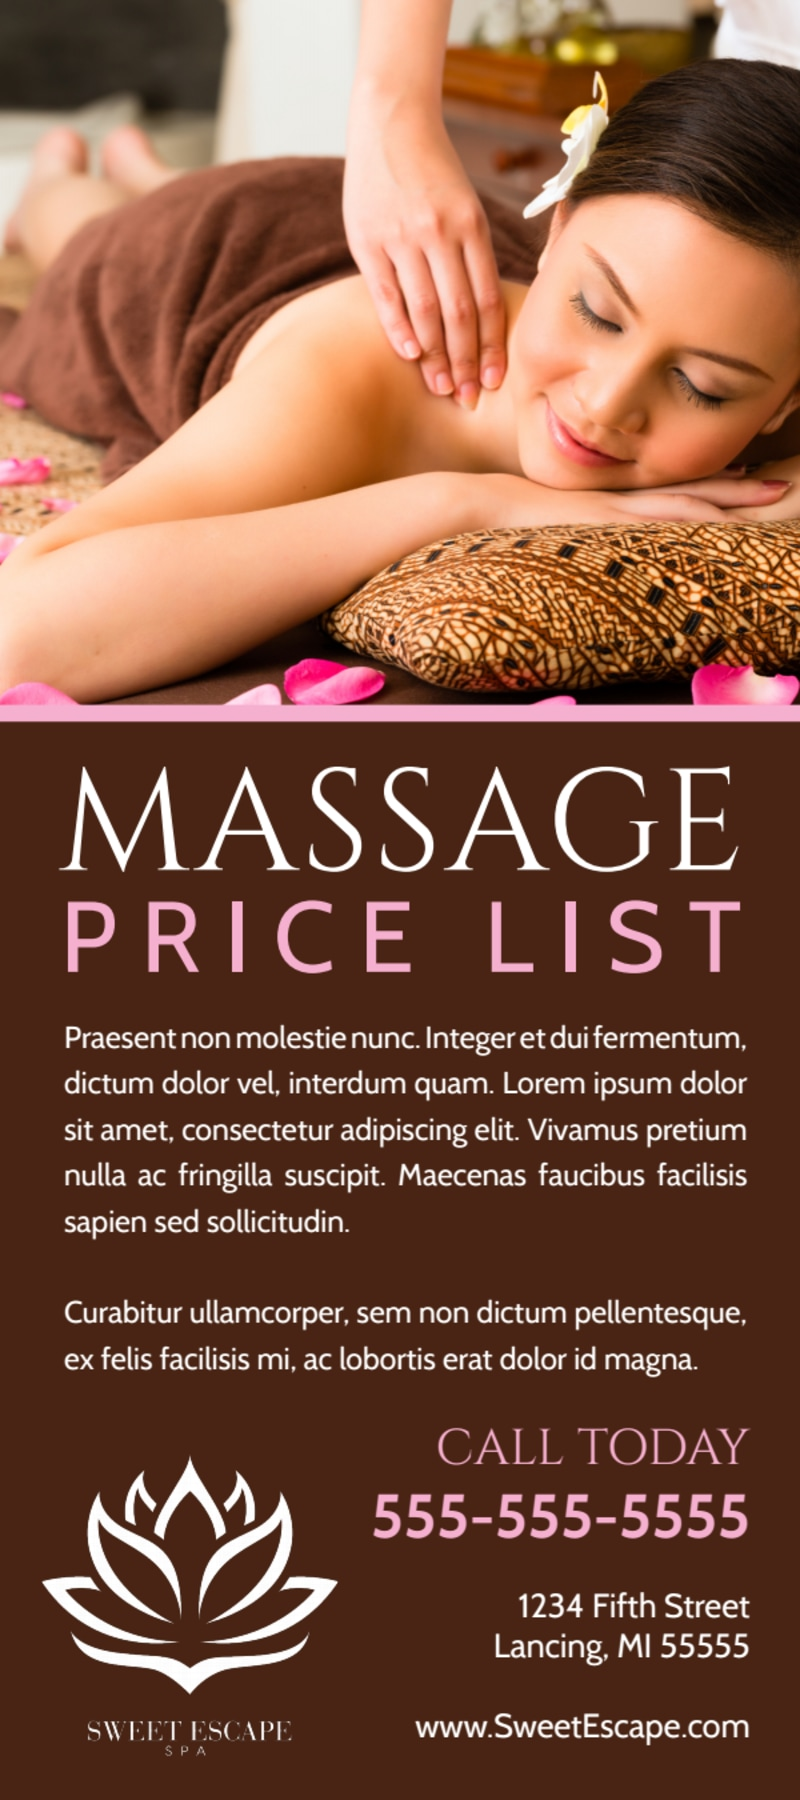 Price List Massage Flyer Template Preview 2